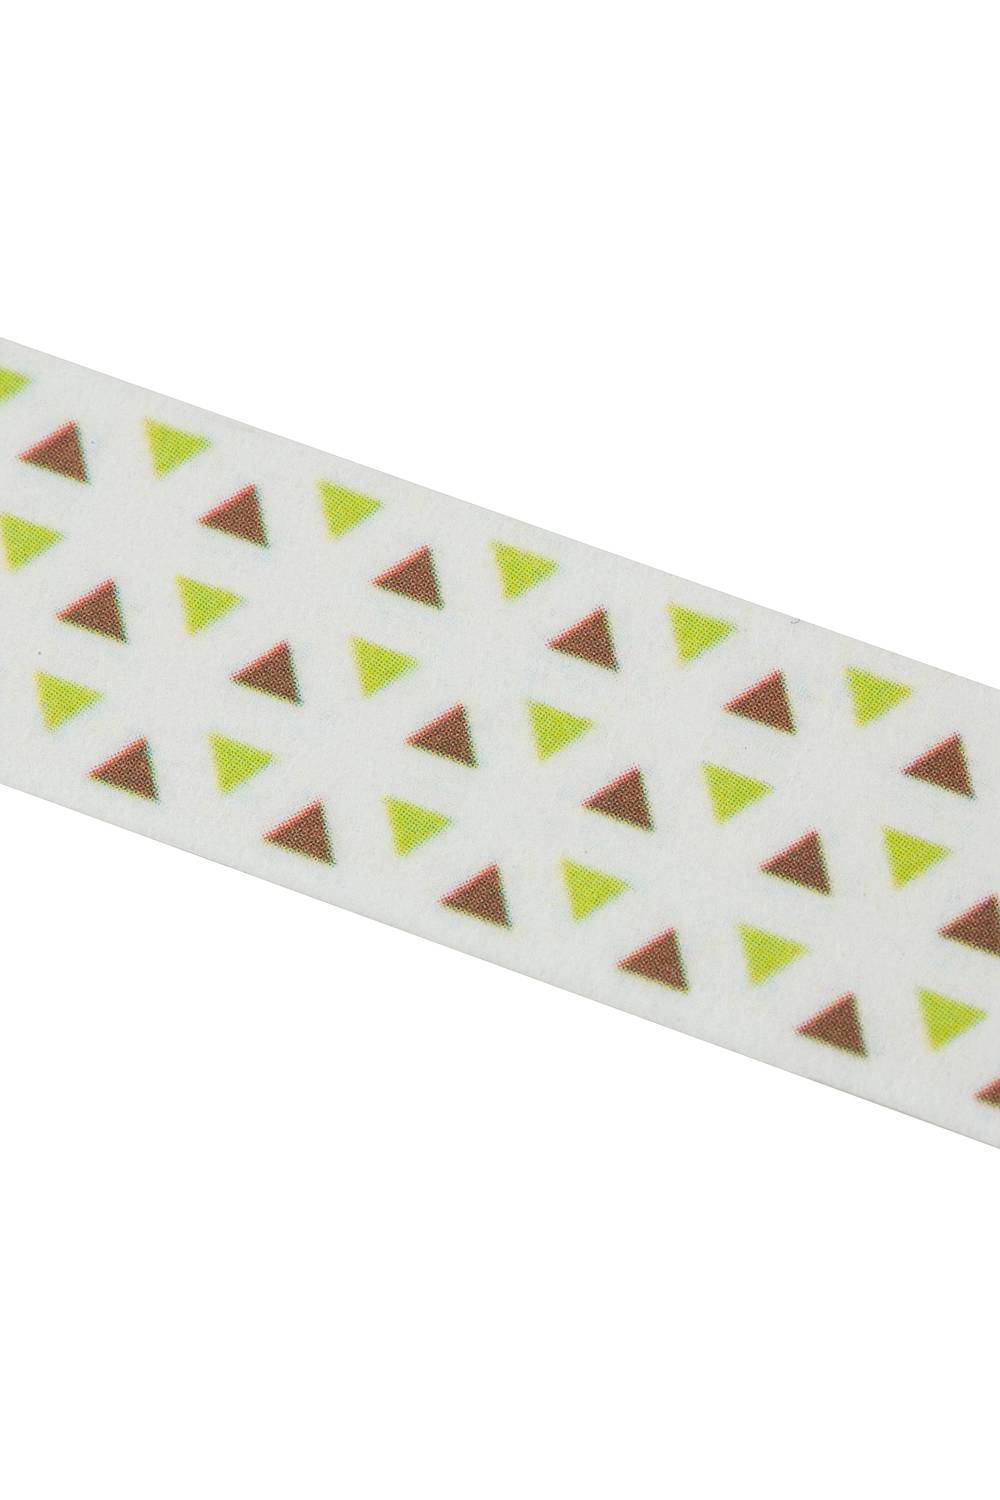 Washi Tape TRIANGLES